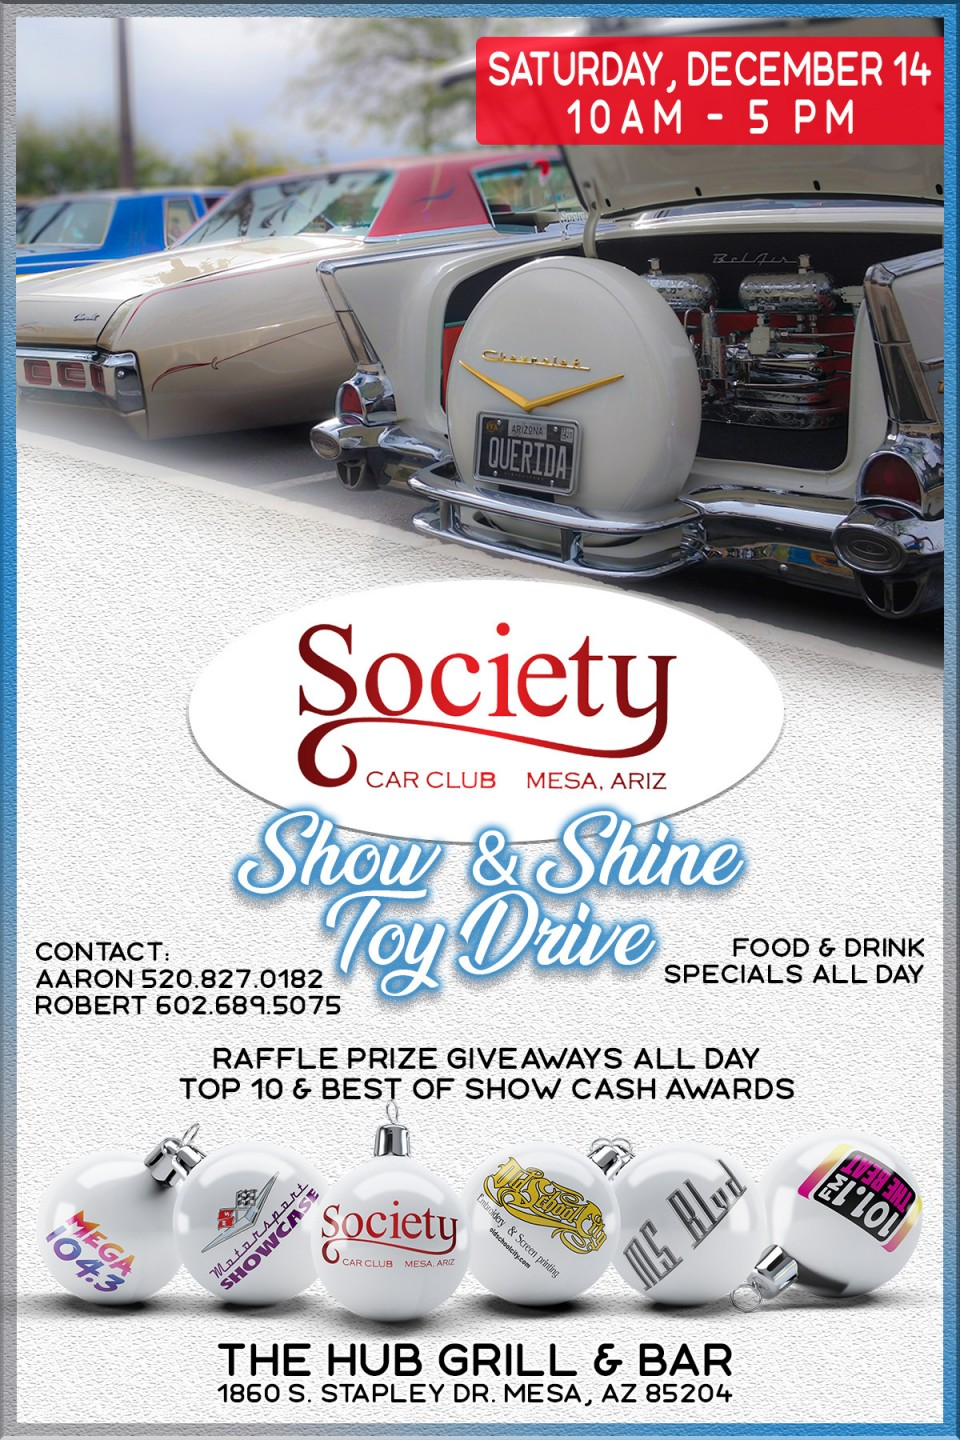 Society Car Club Show & Shine at The Hub in Mesa, AZ. December 14